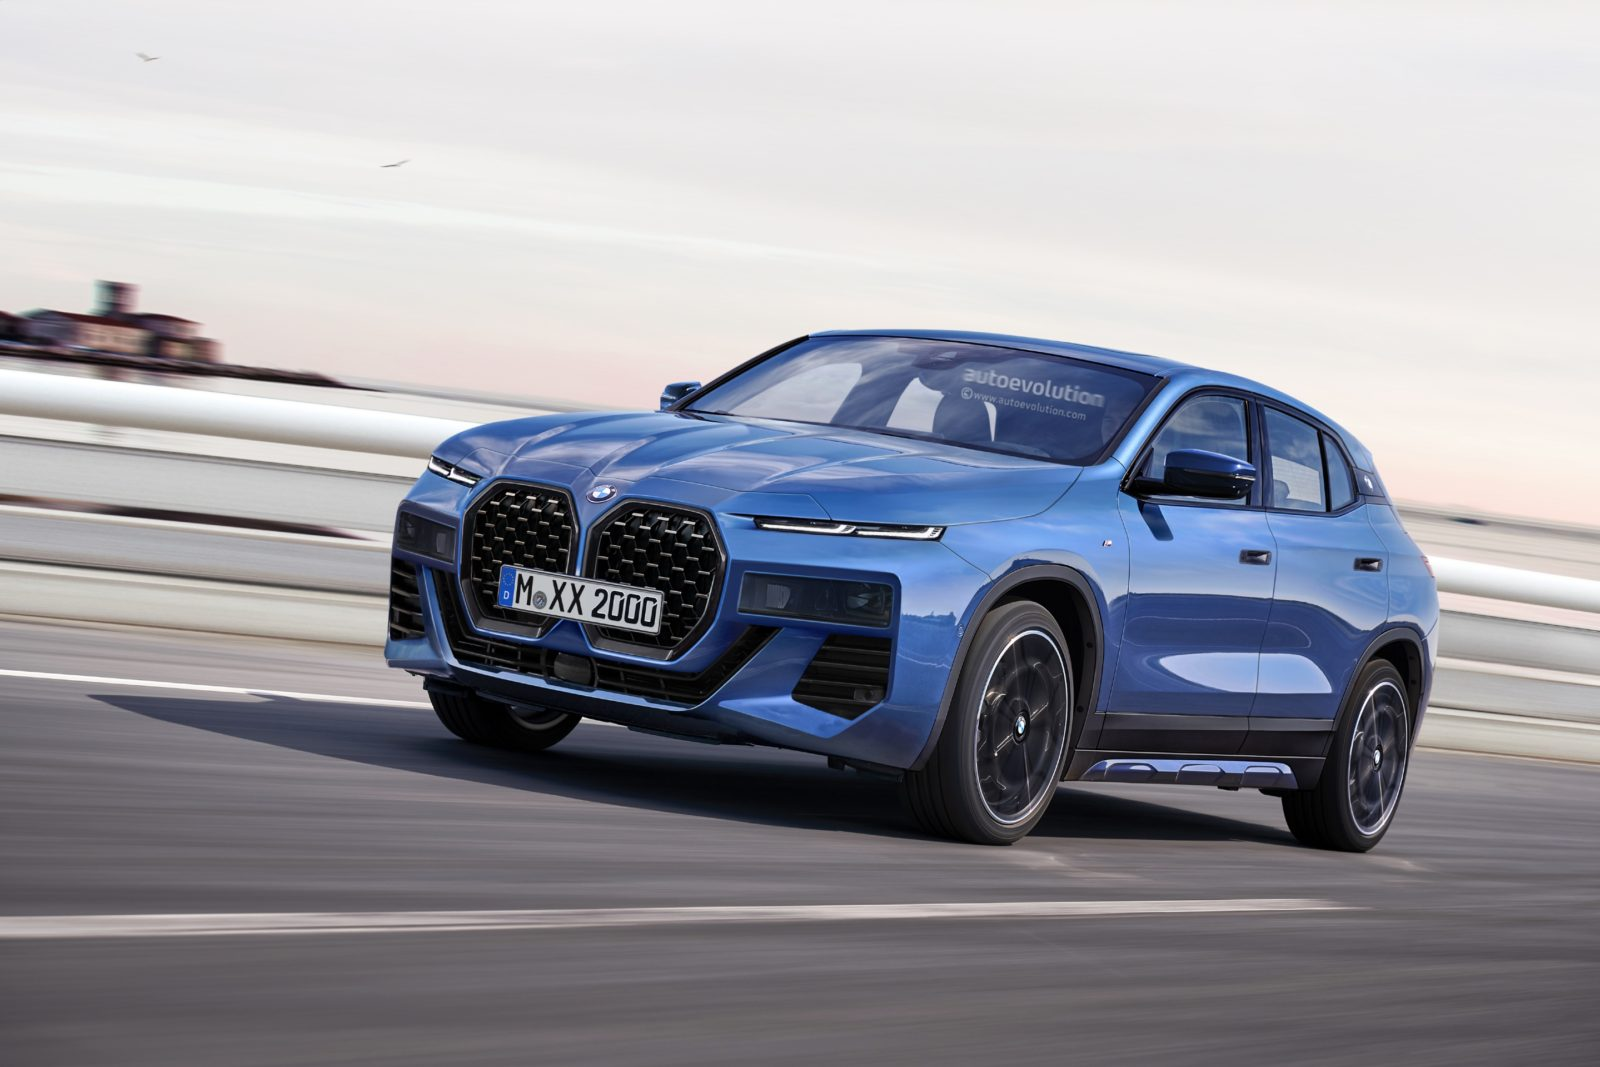 upcoming-bmw-x2-redesign-imagined-with-split-headlights,-large-kidney-grille